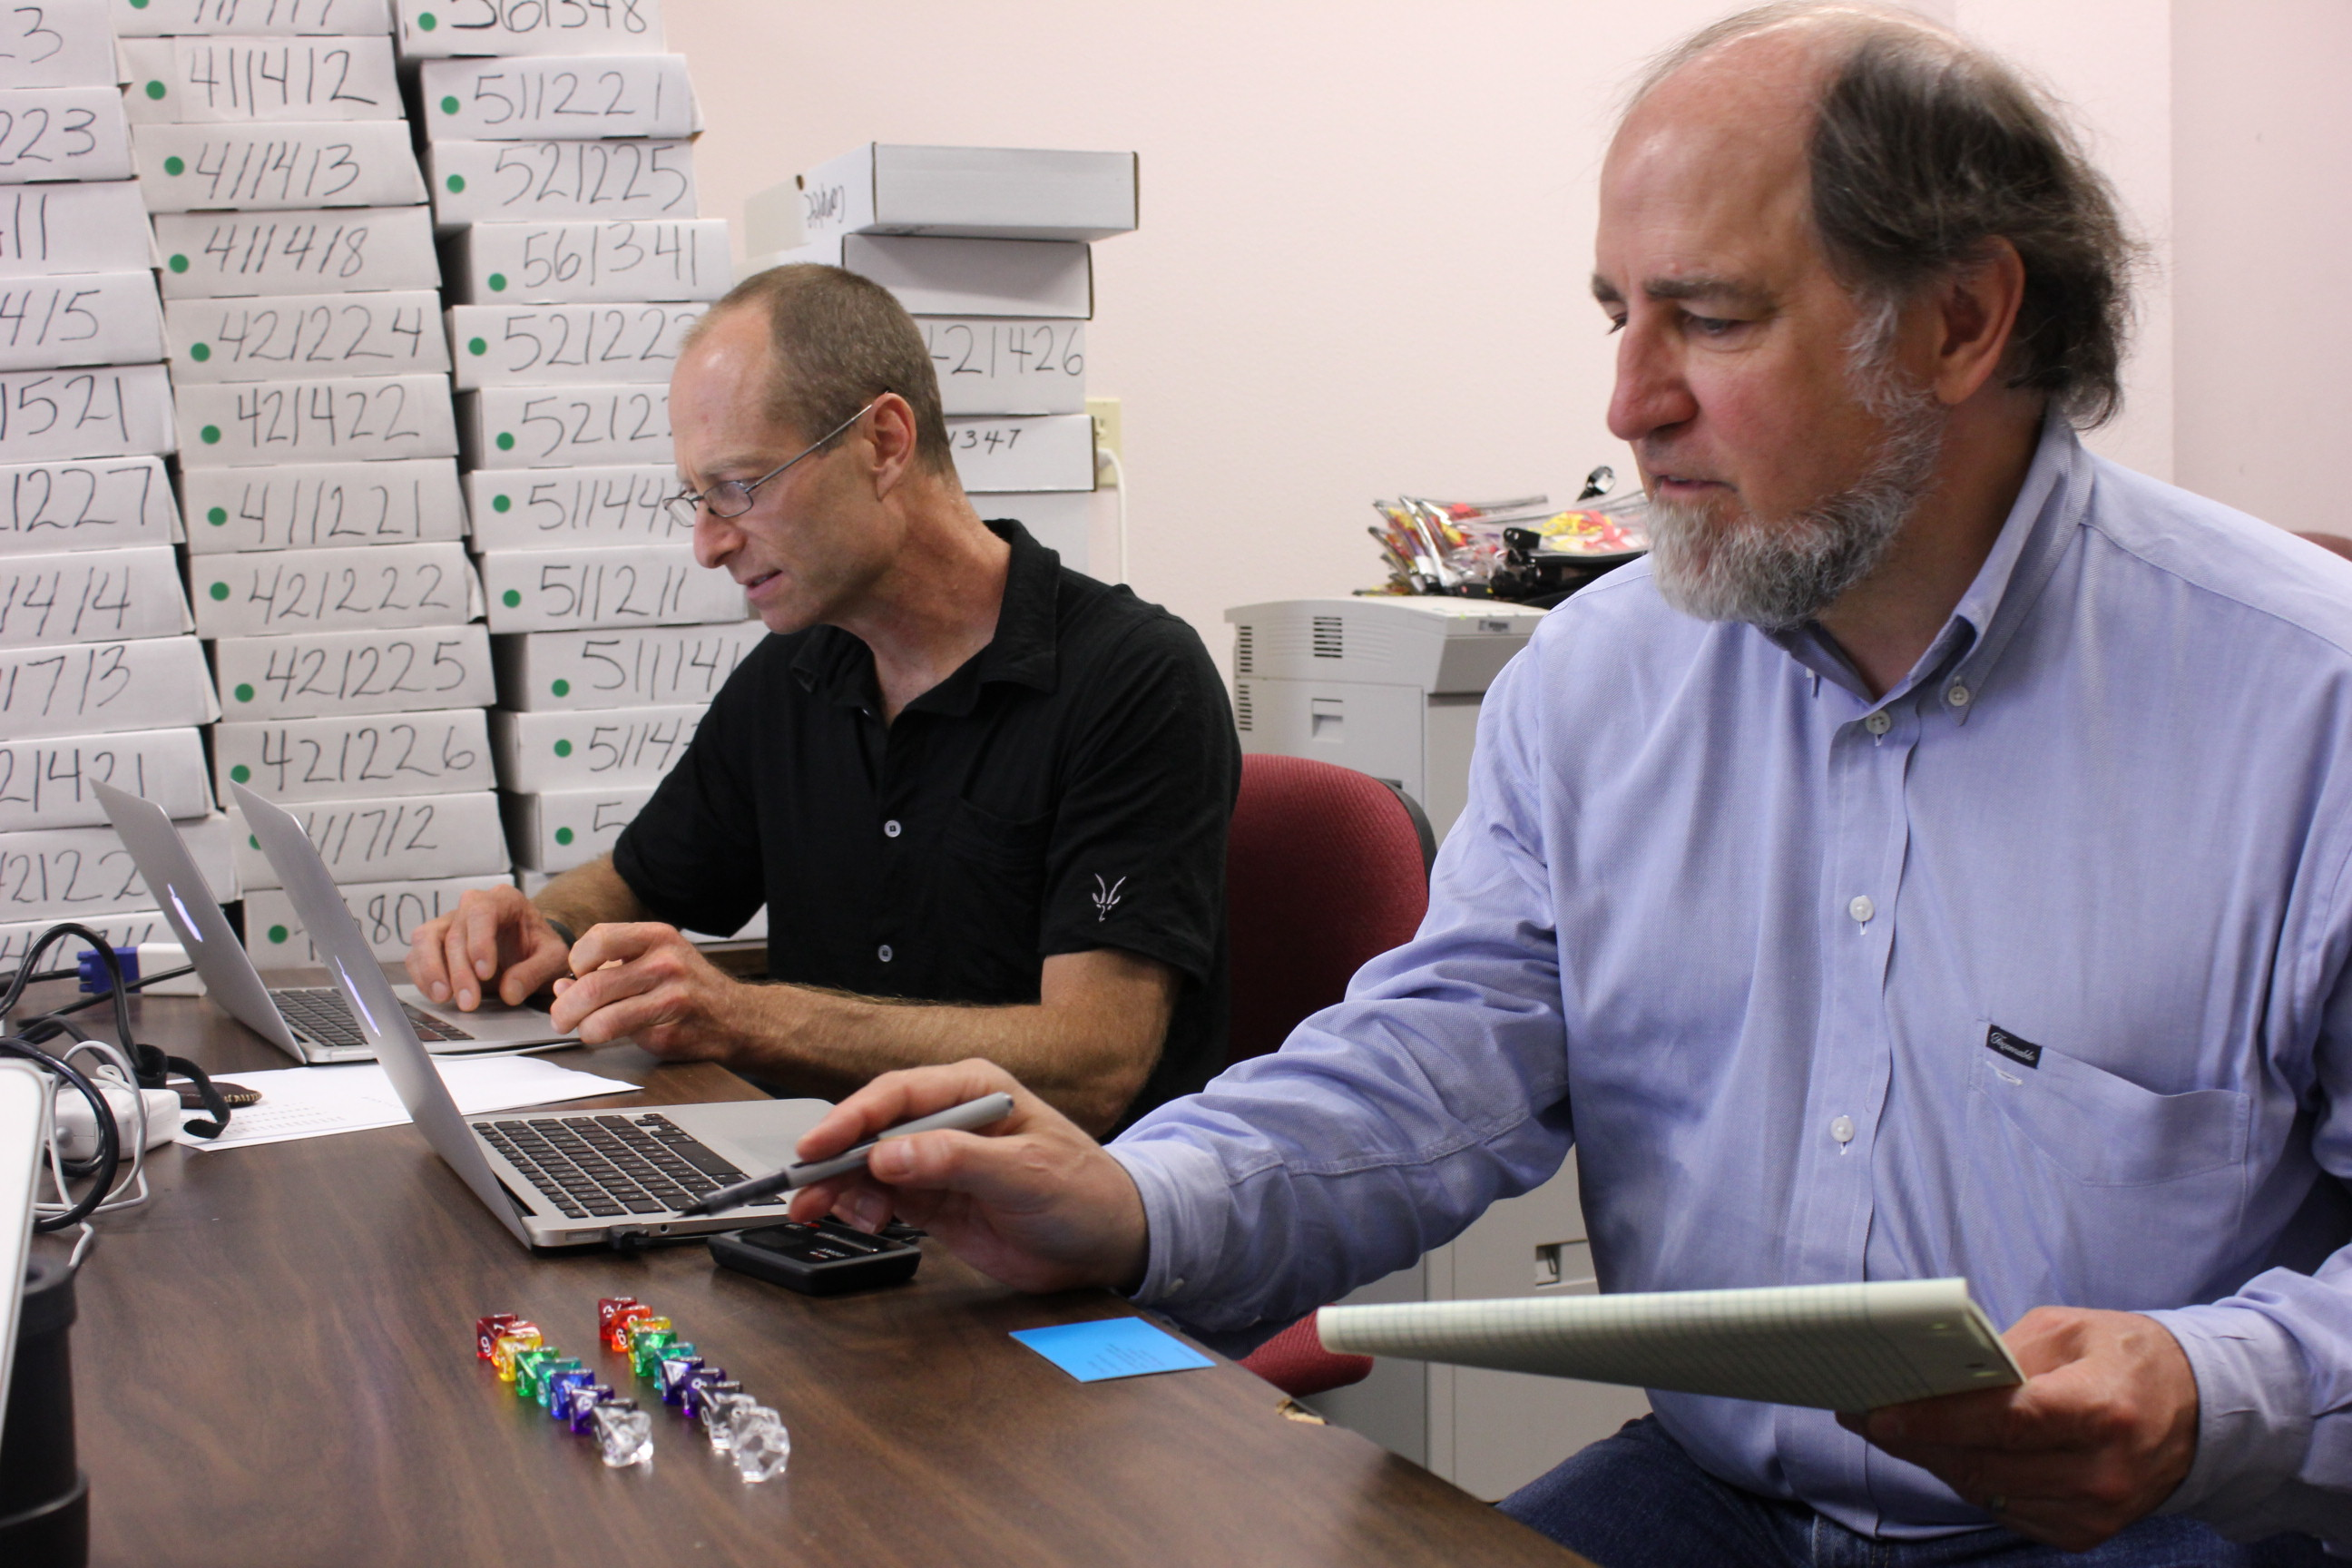 Ron Rivest, an MIT cryptographer, helped Stark use 10-sided dice to produce a random seed.